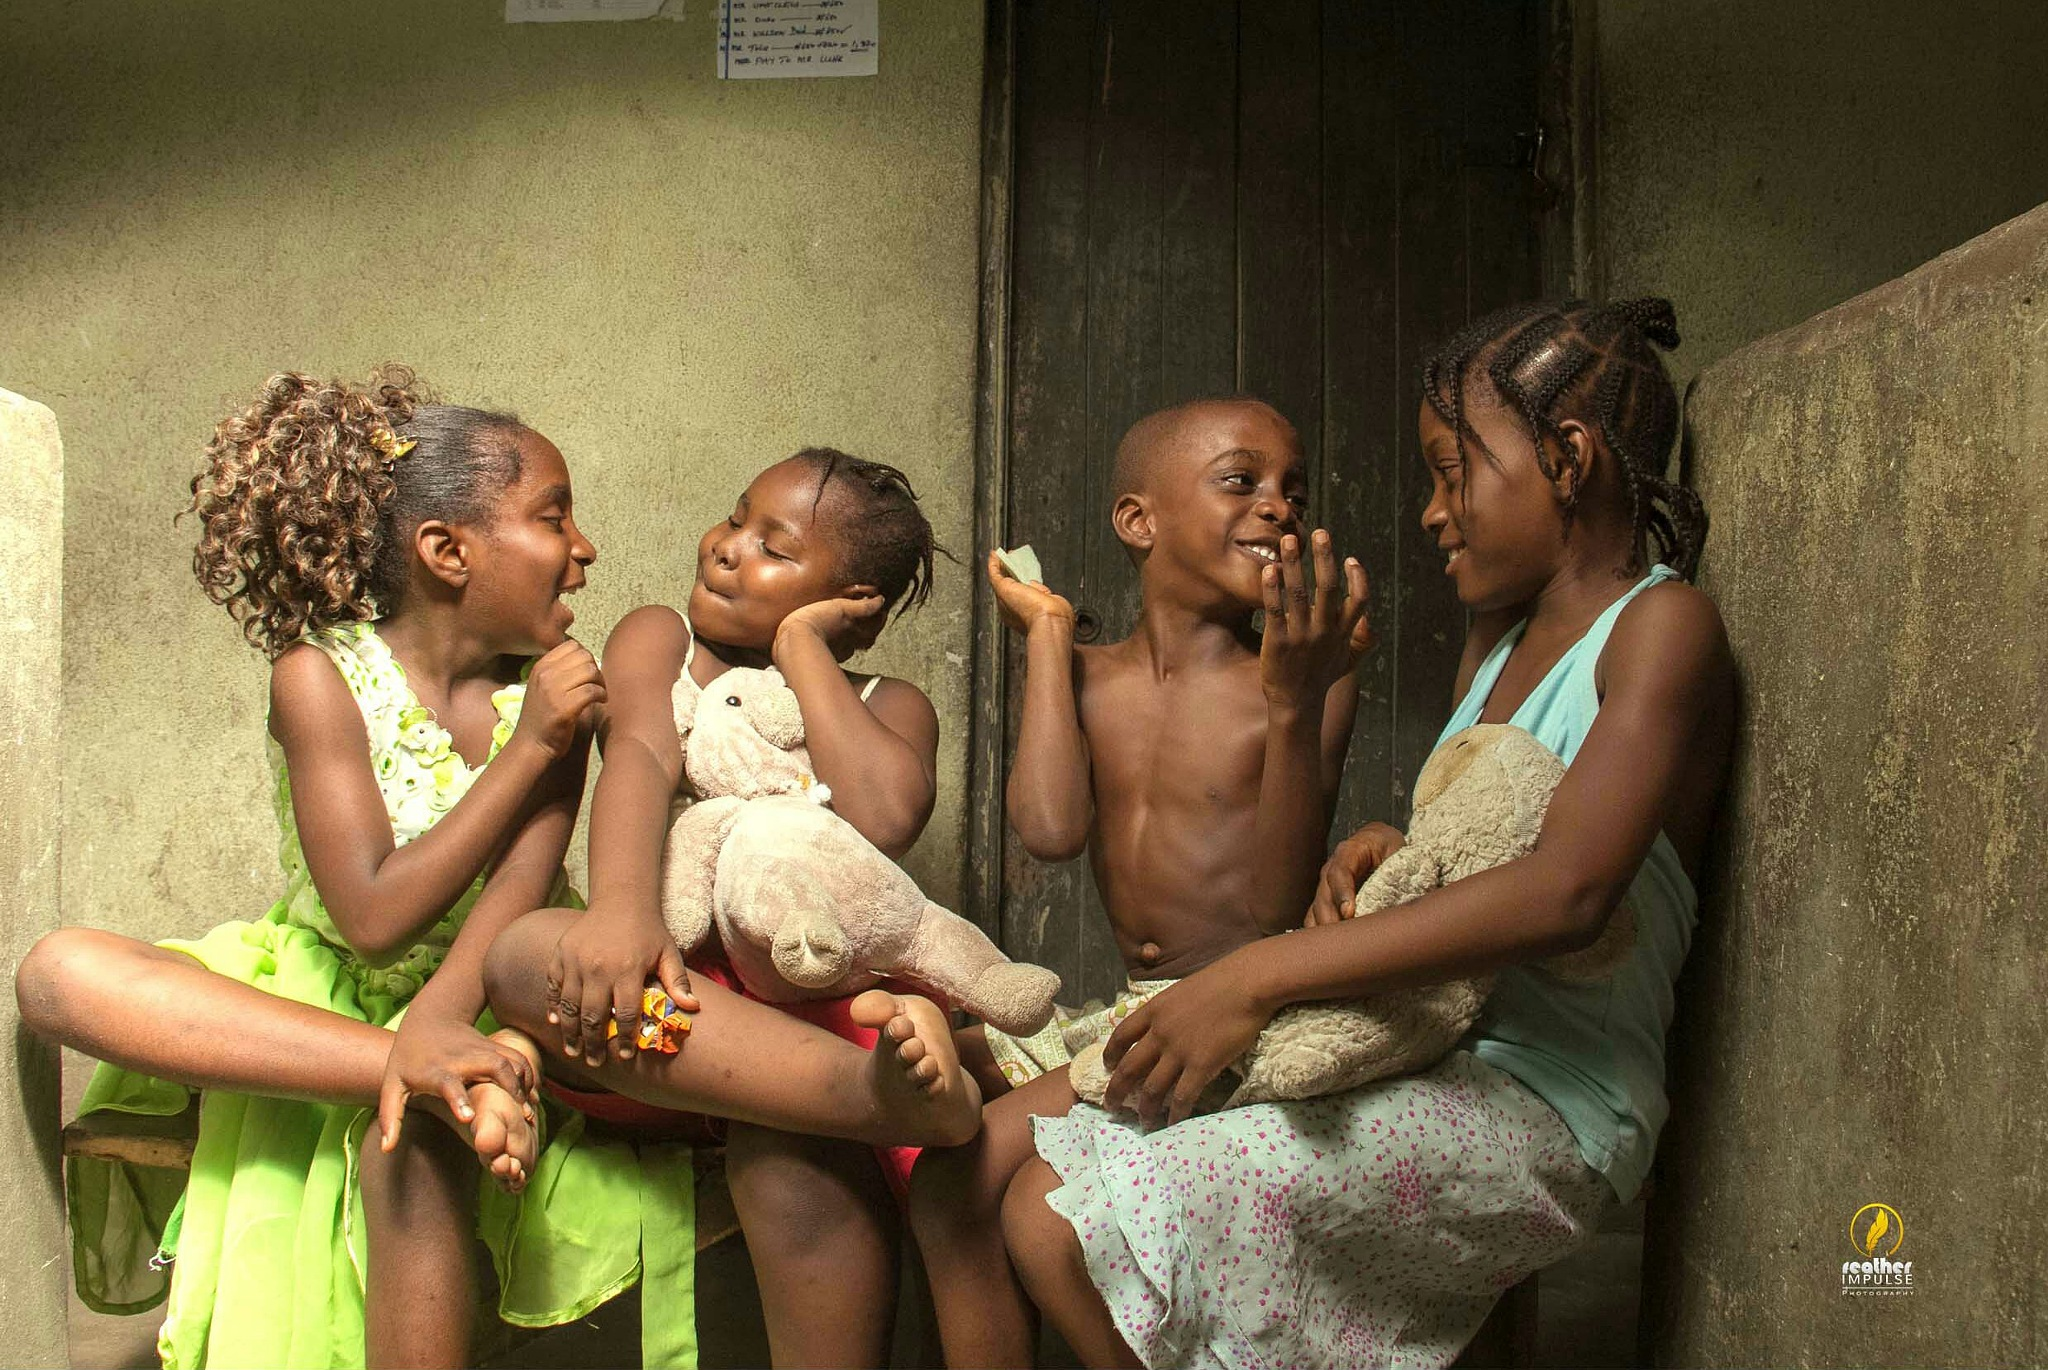 Our lil gathering by Ifeanyichukwu P. Nwachukwu